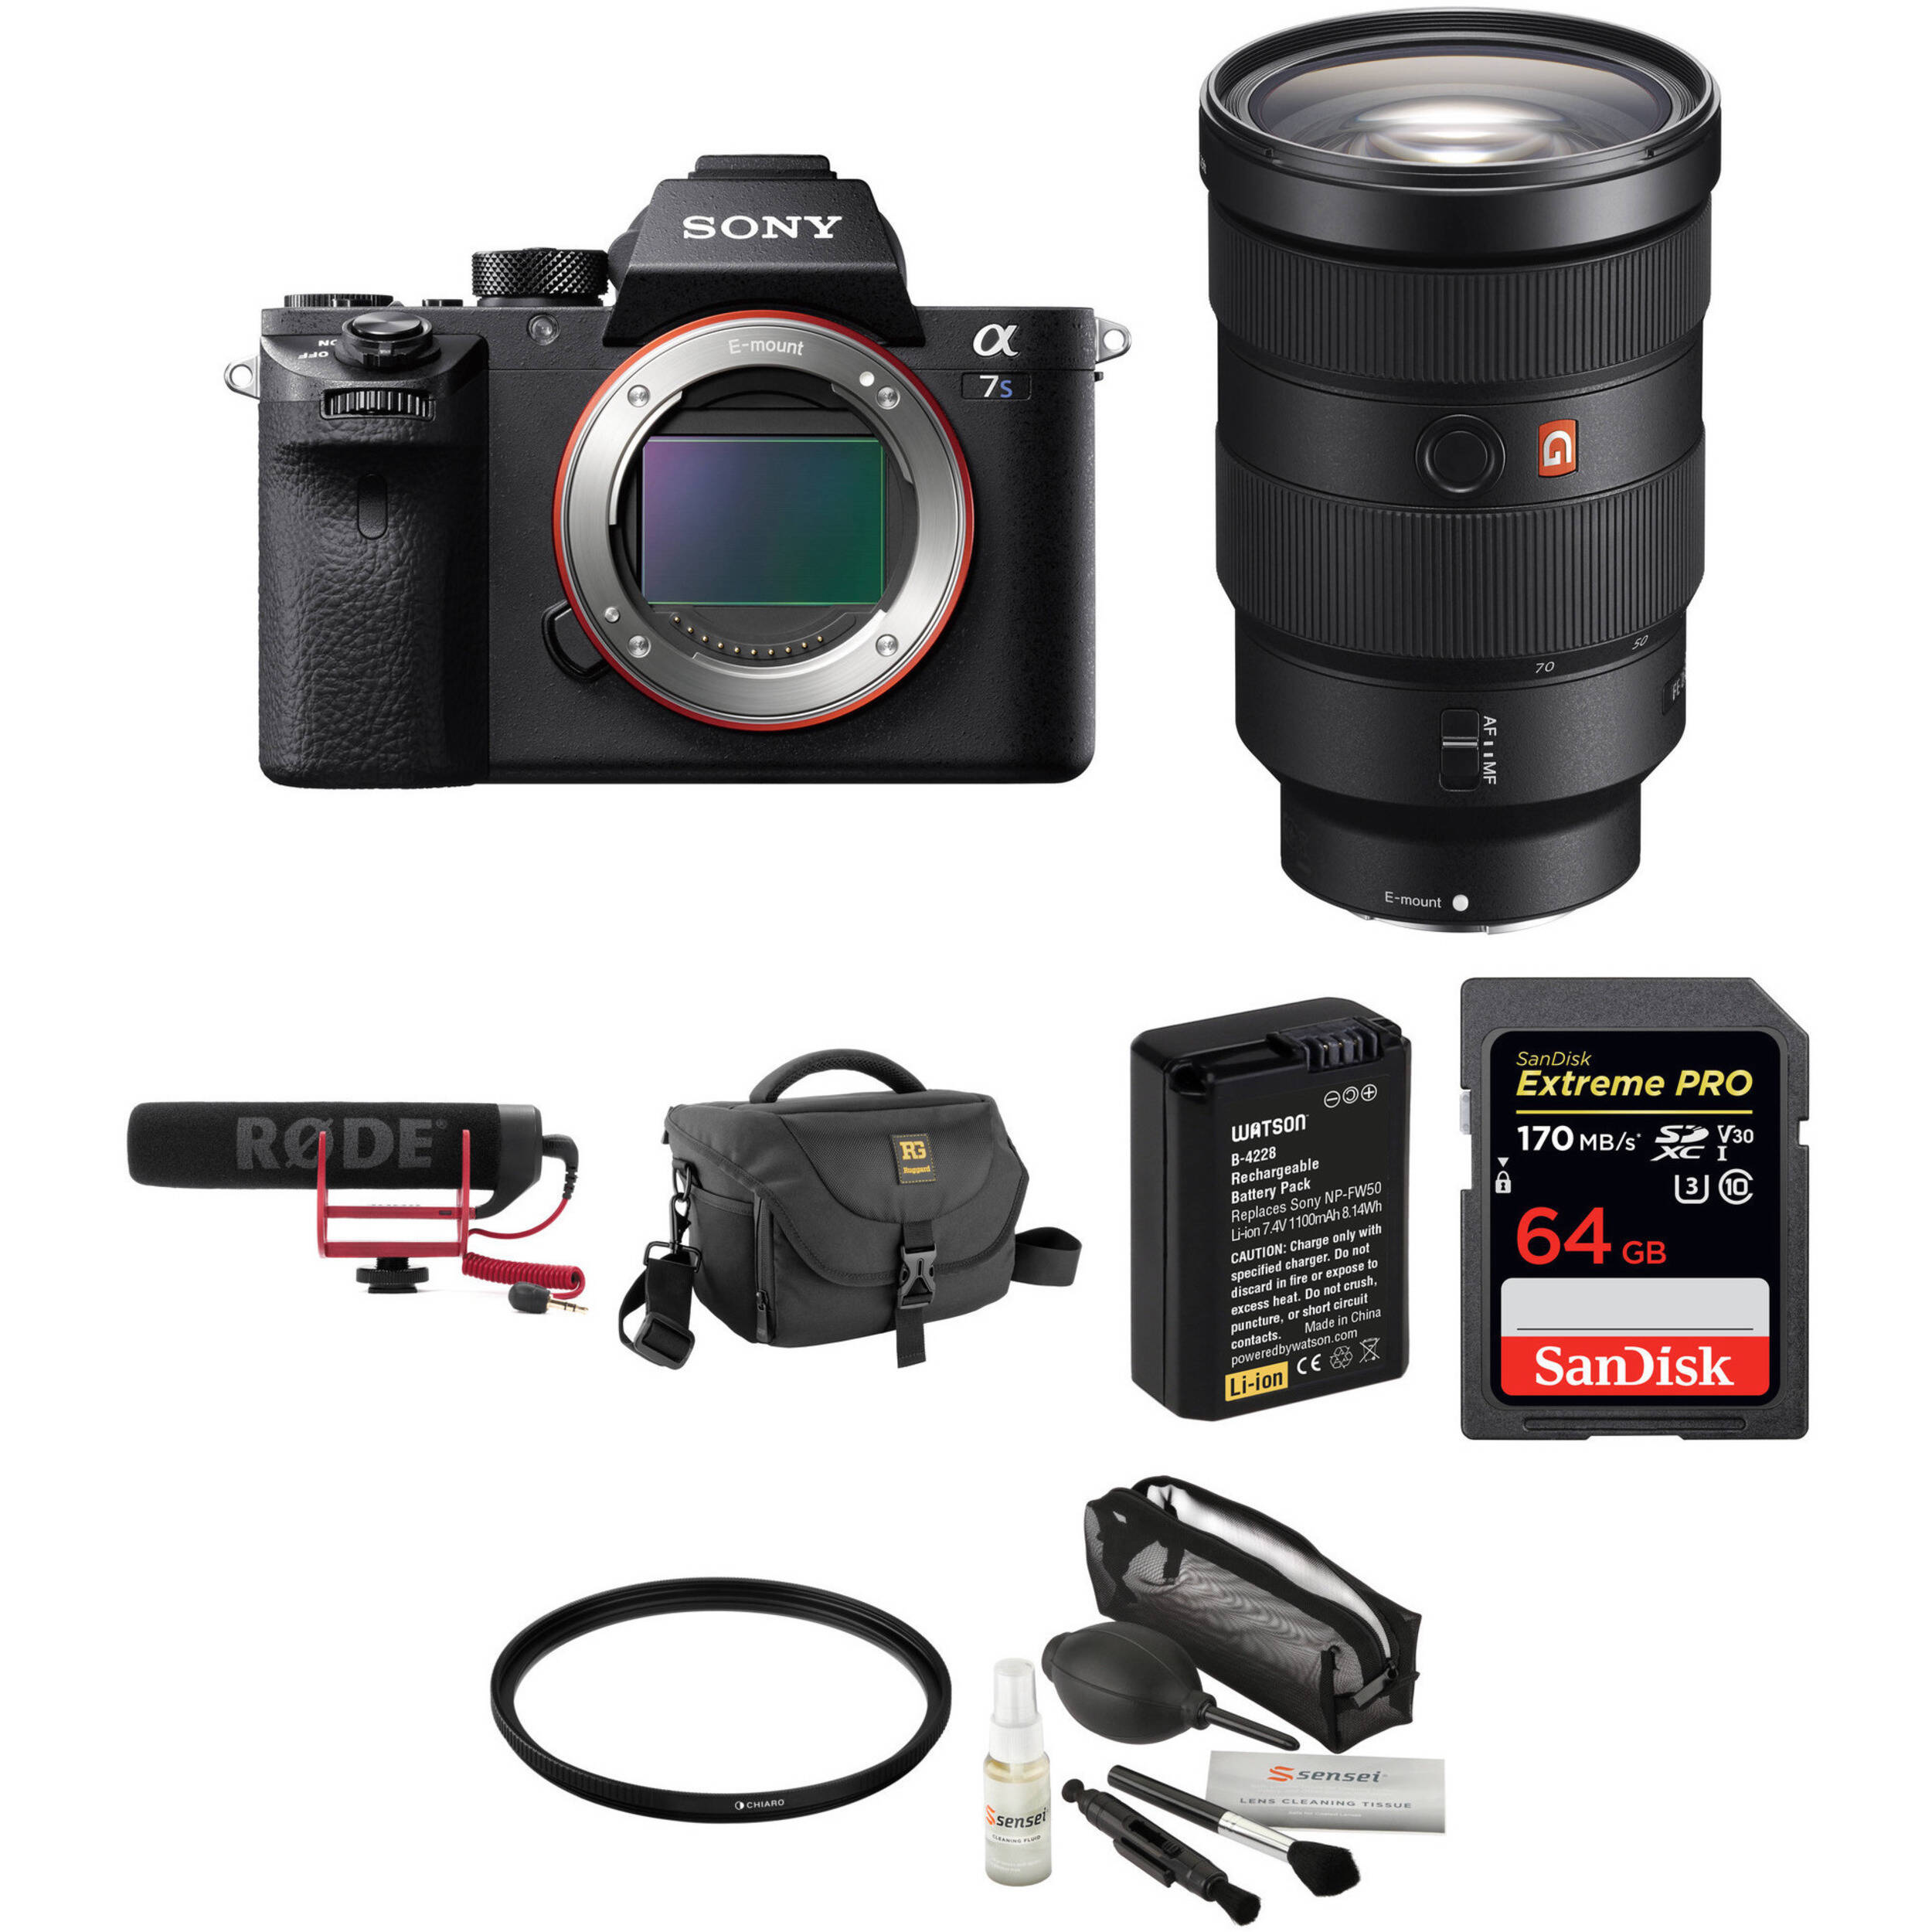 Sony Alpha a7S II Mirrorless Digital Camera with 24-70mm f/2 8 Lens and  Rode VideoMic Kit